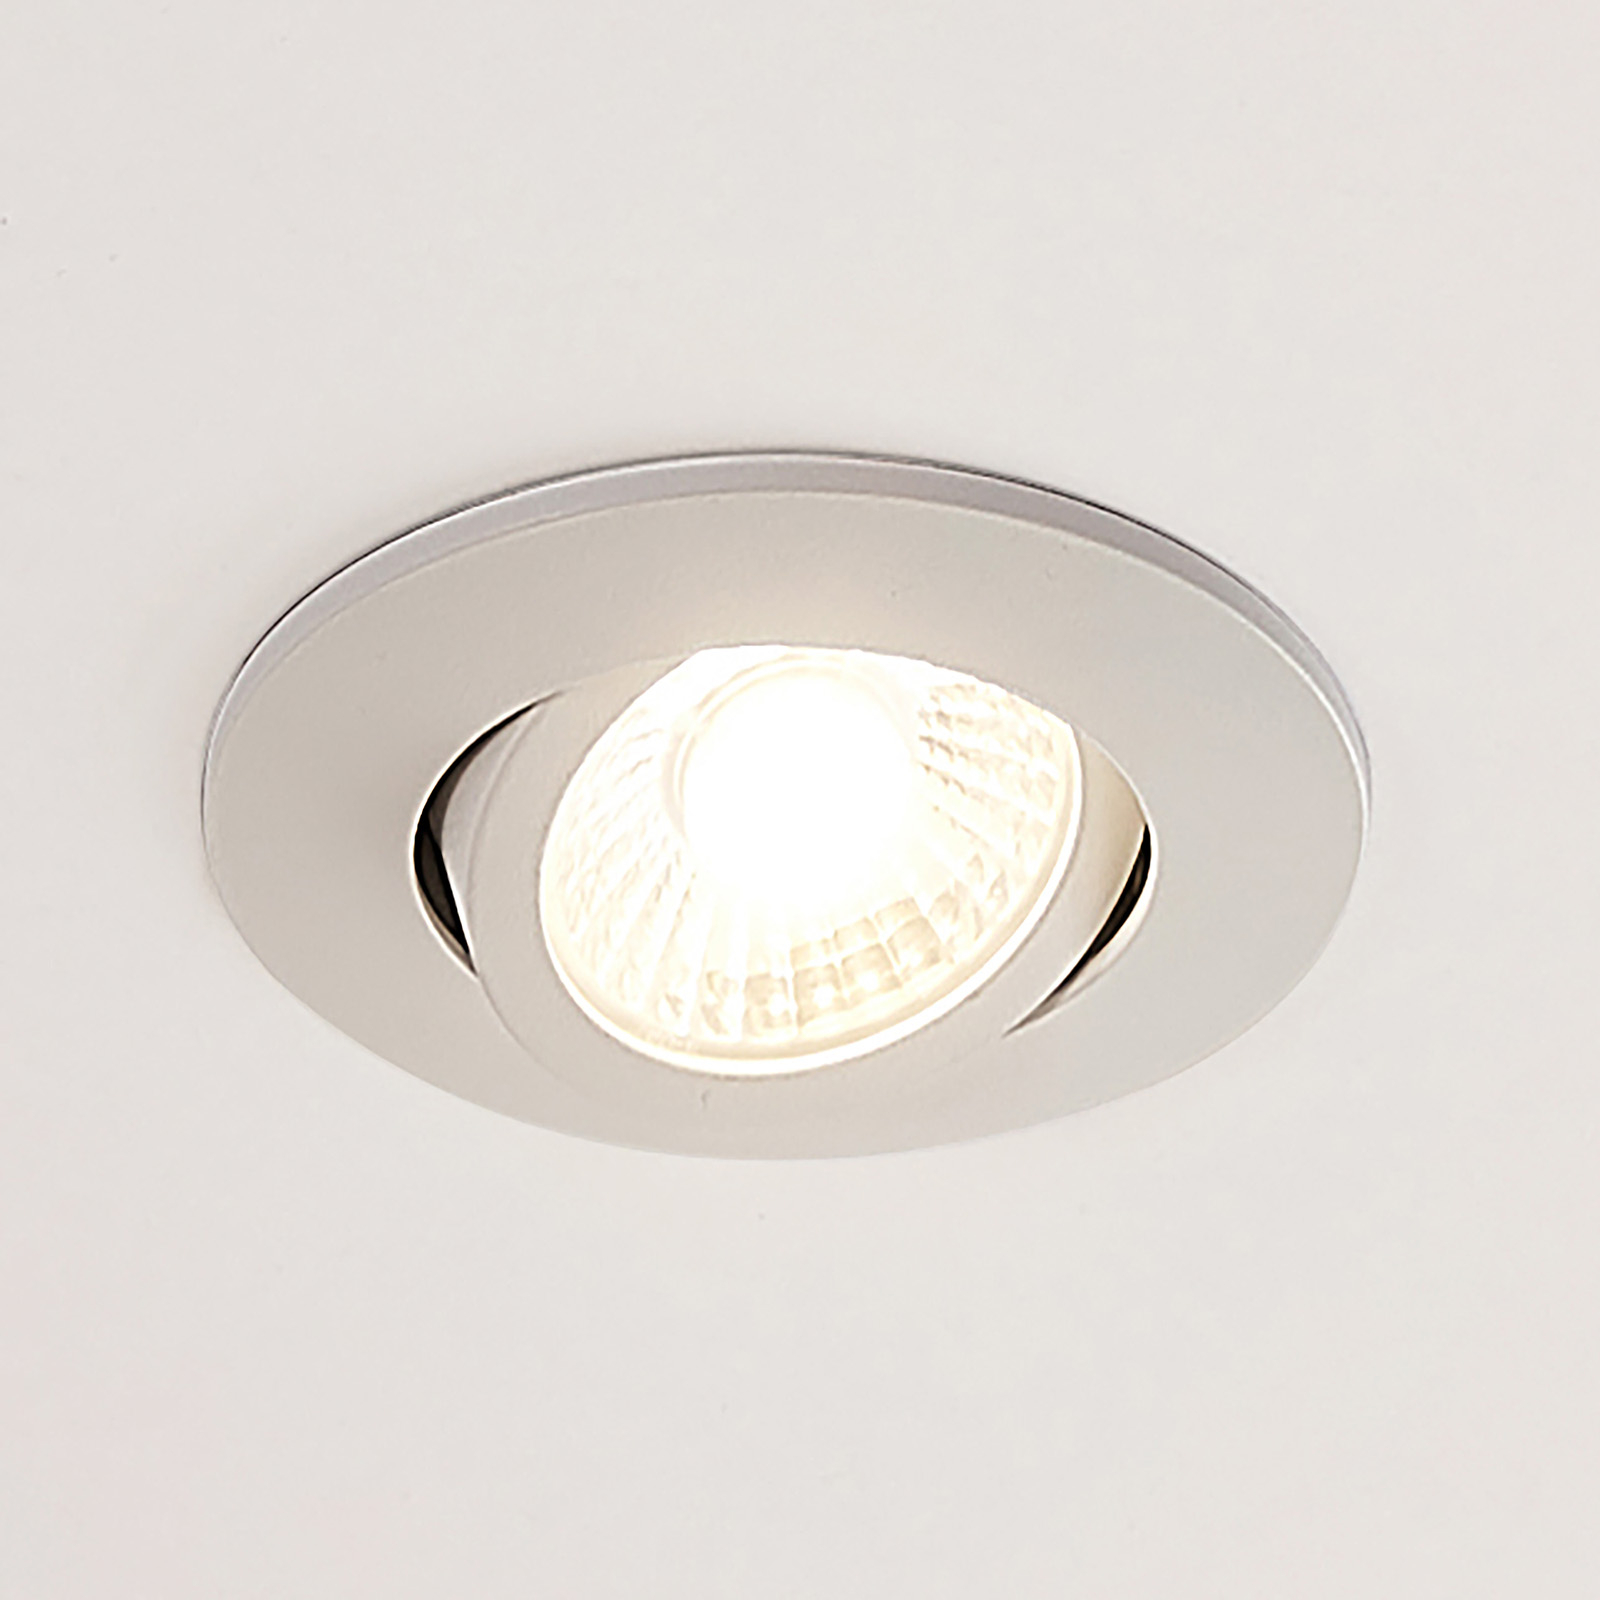 Arcchio Ricals LED-Downlight, dimmbar